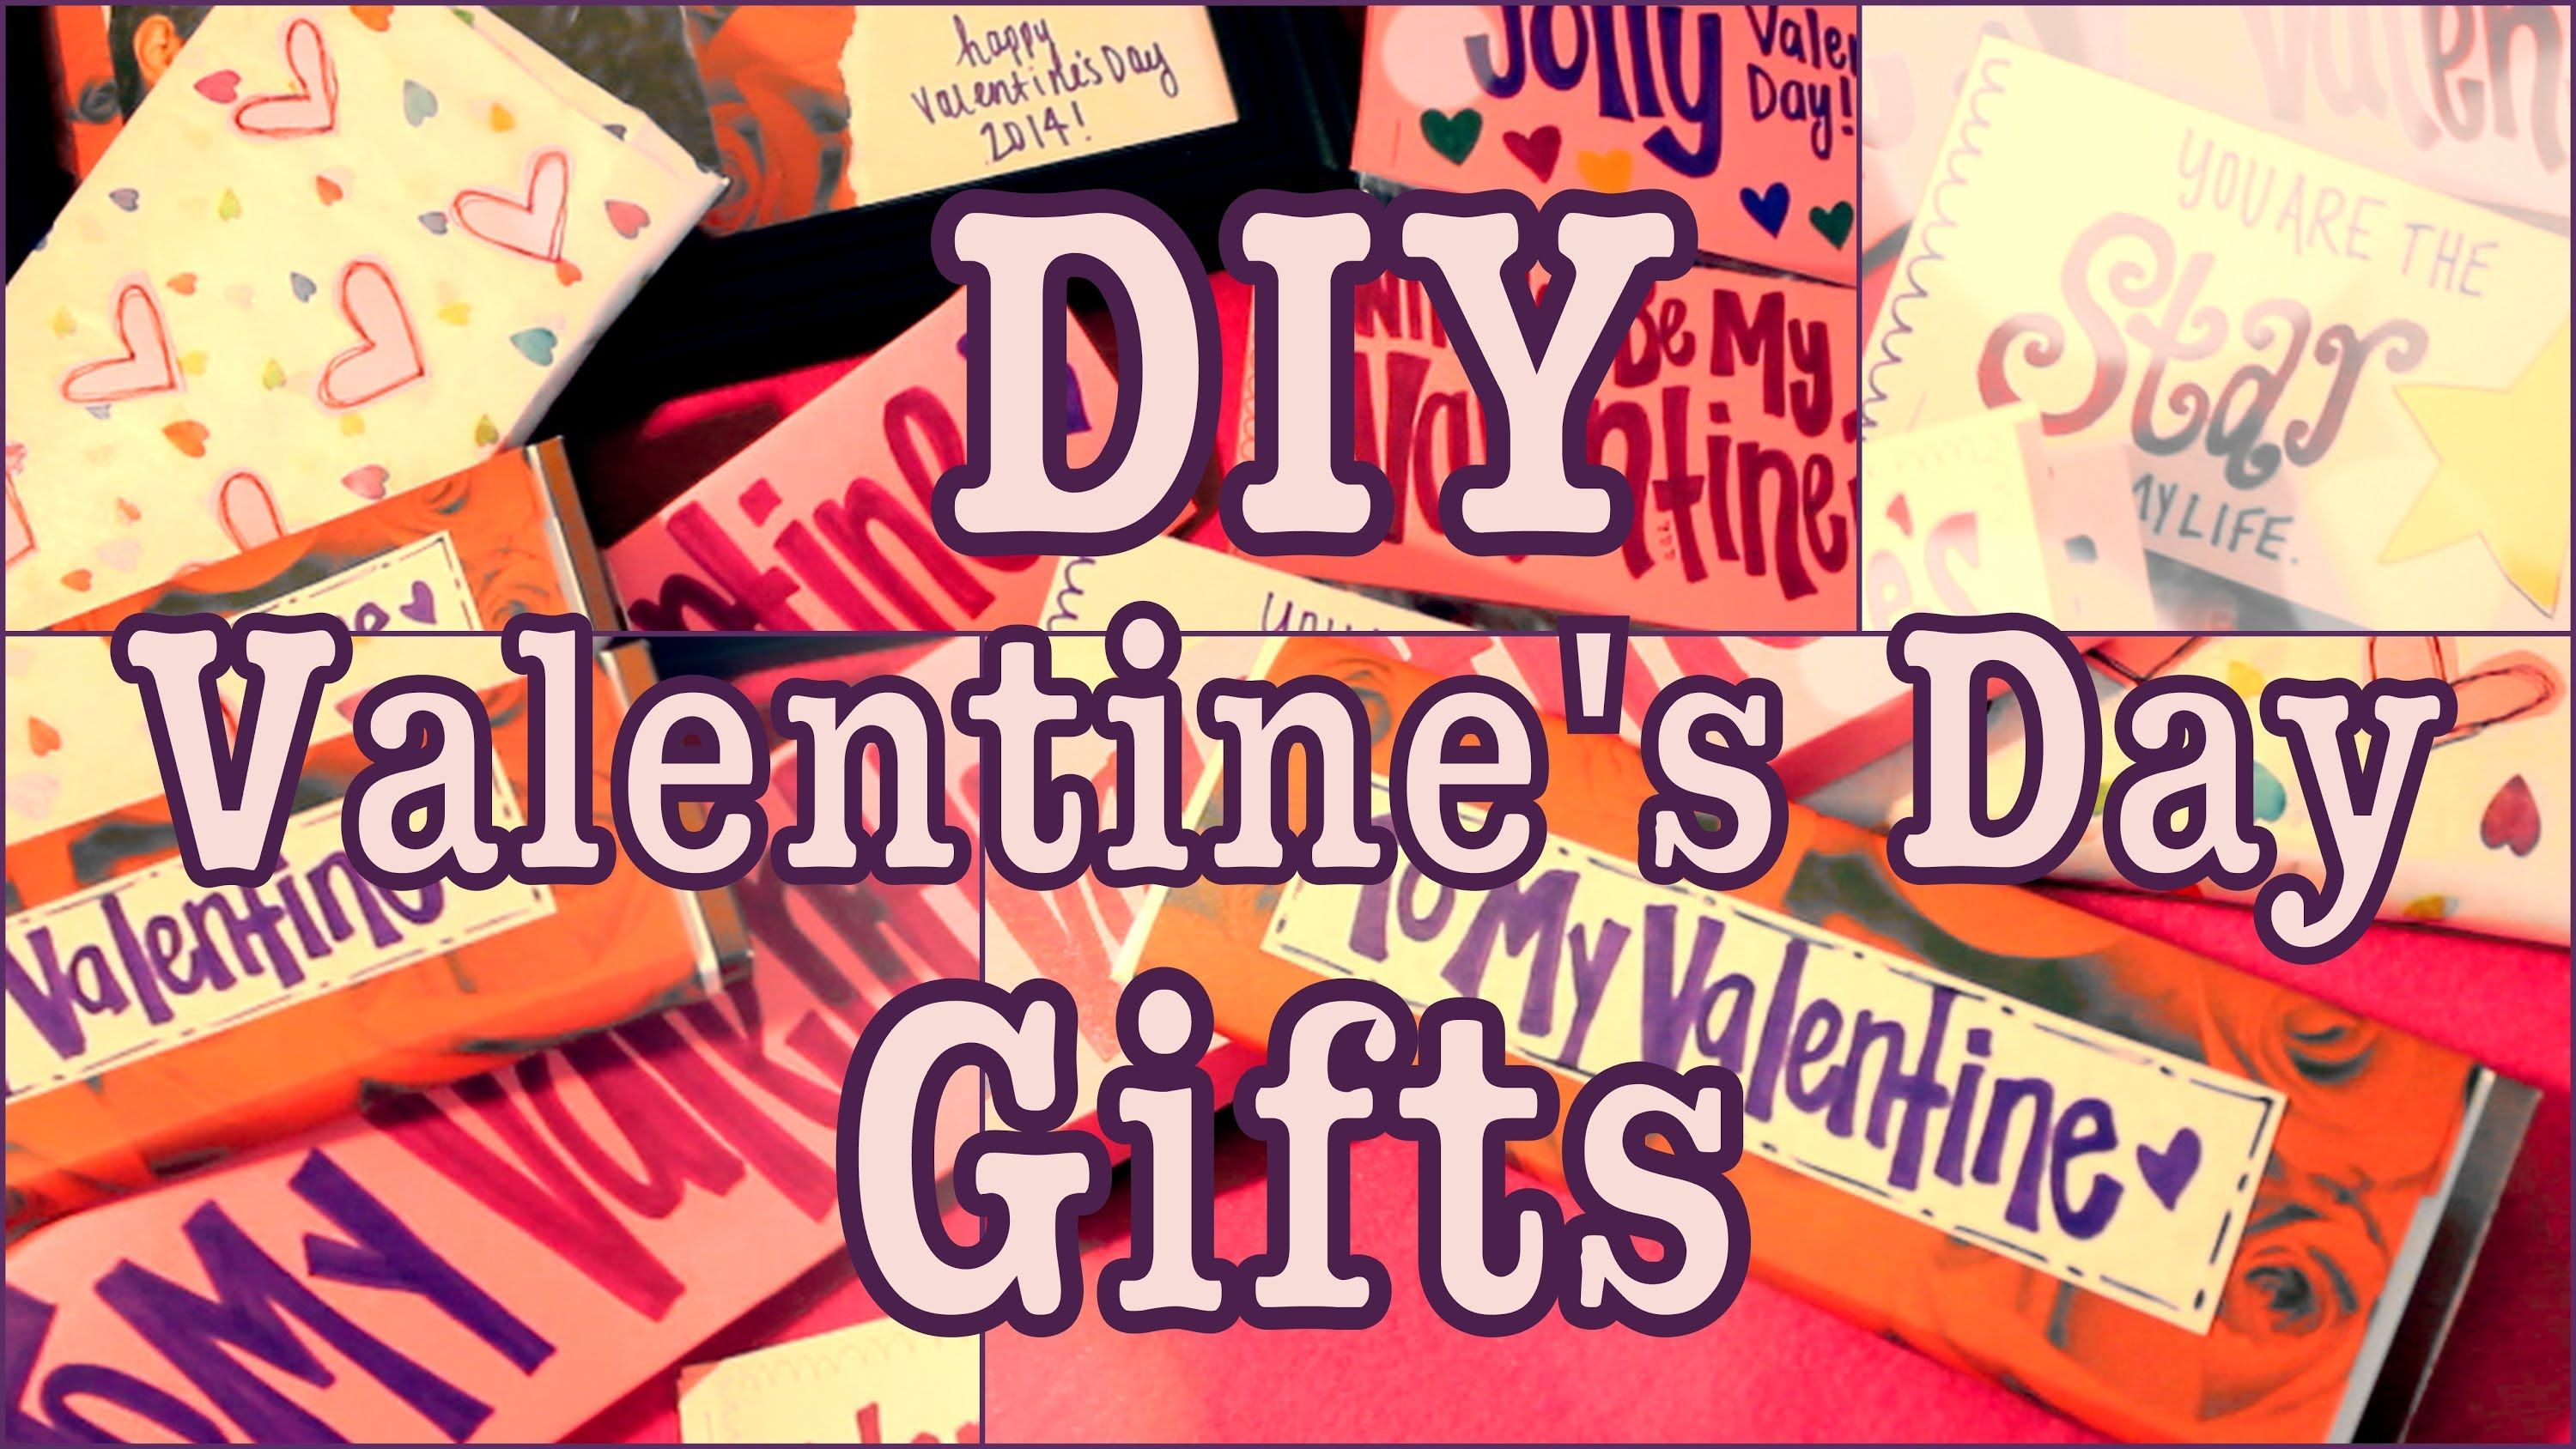 Diy valentines day gift ideas fast easy last minute